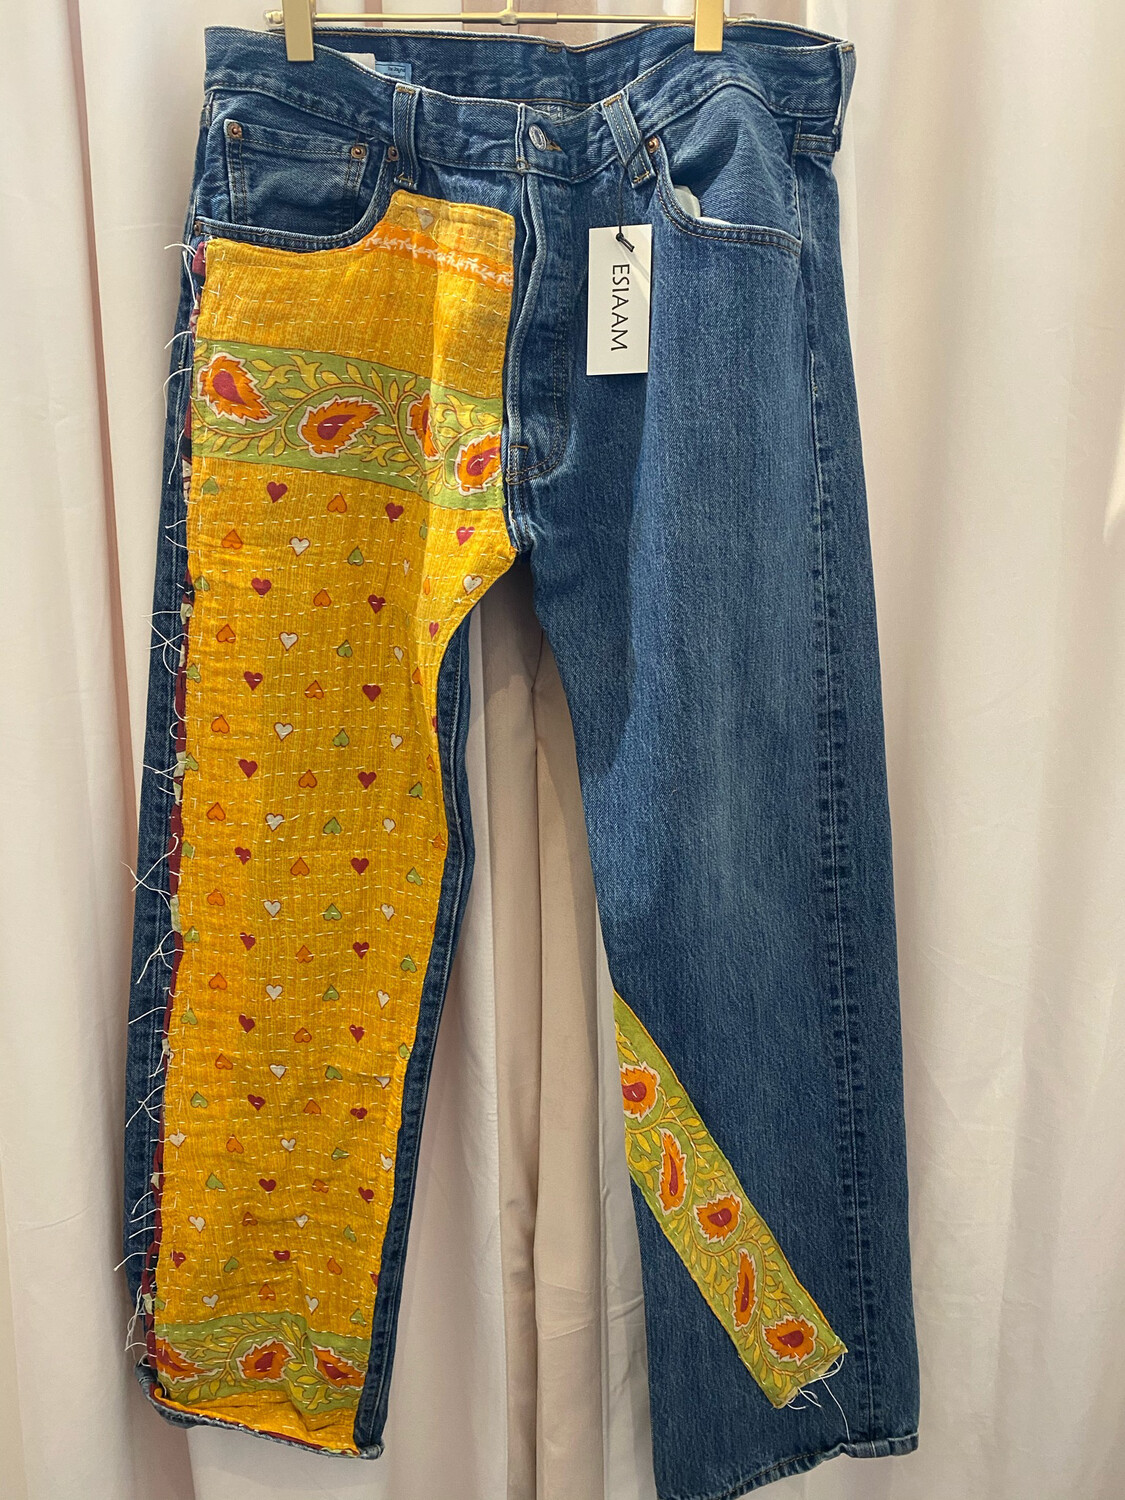 """ESIAAM """"The Nancy"""" Upcycled Levi Kantha Quilt Jeans 501 36x32"""